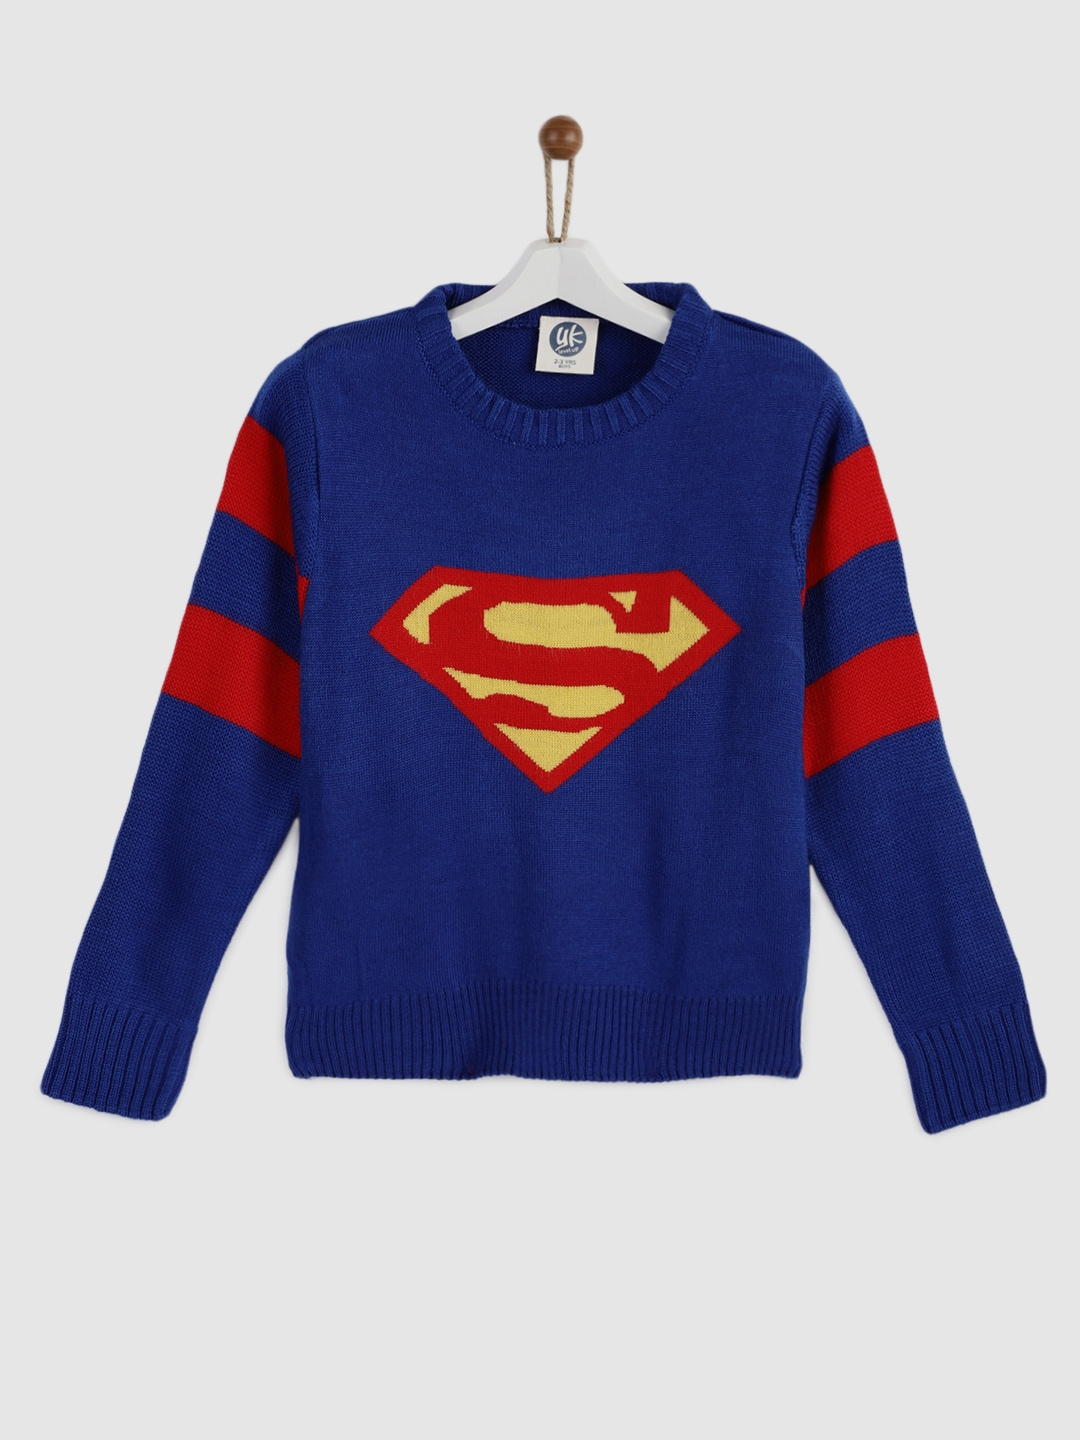 9527cb47cc2 Boys Sweaters- Buy Sweaters for Boys online in India